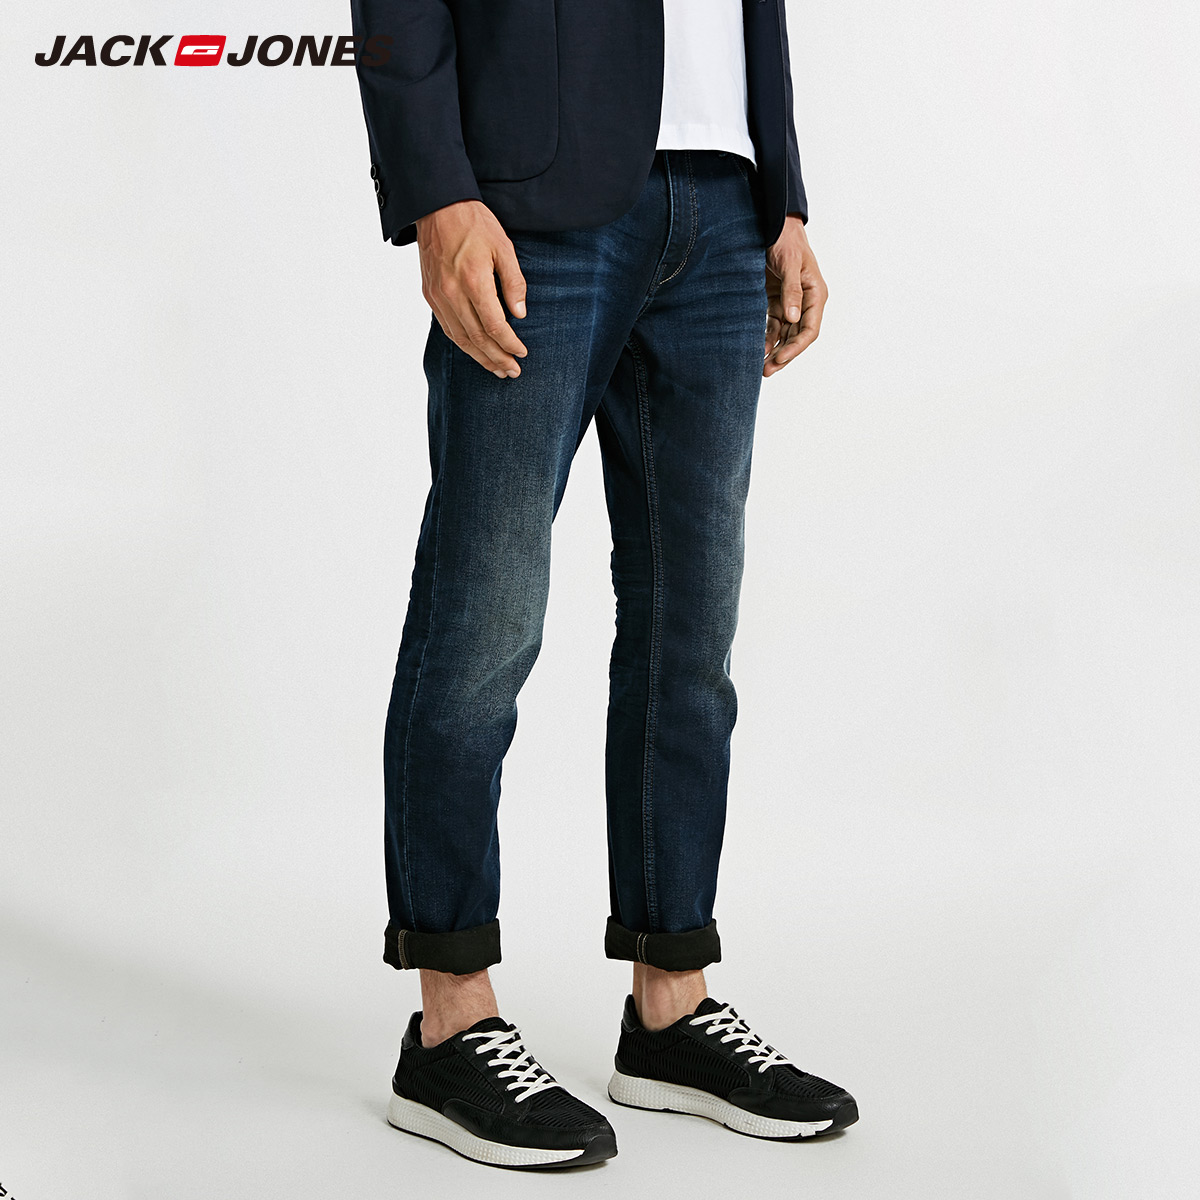 JackJones Men's Winter Cotton Casual Pants Stretch Biker Pants Fashion Classical Denim   Jeans   Men Slim Male   Jeans   J|218332588